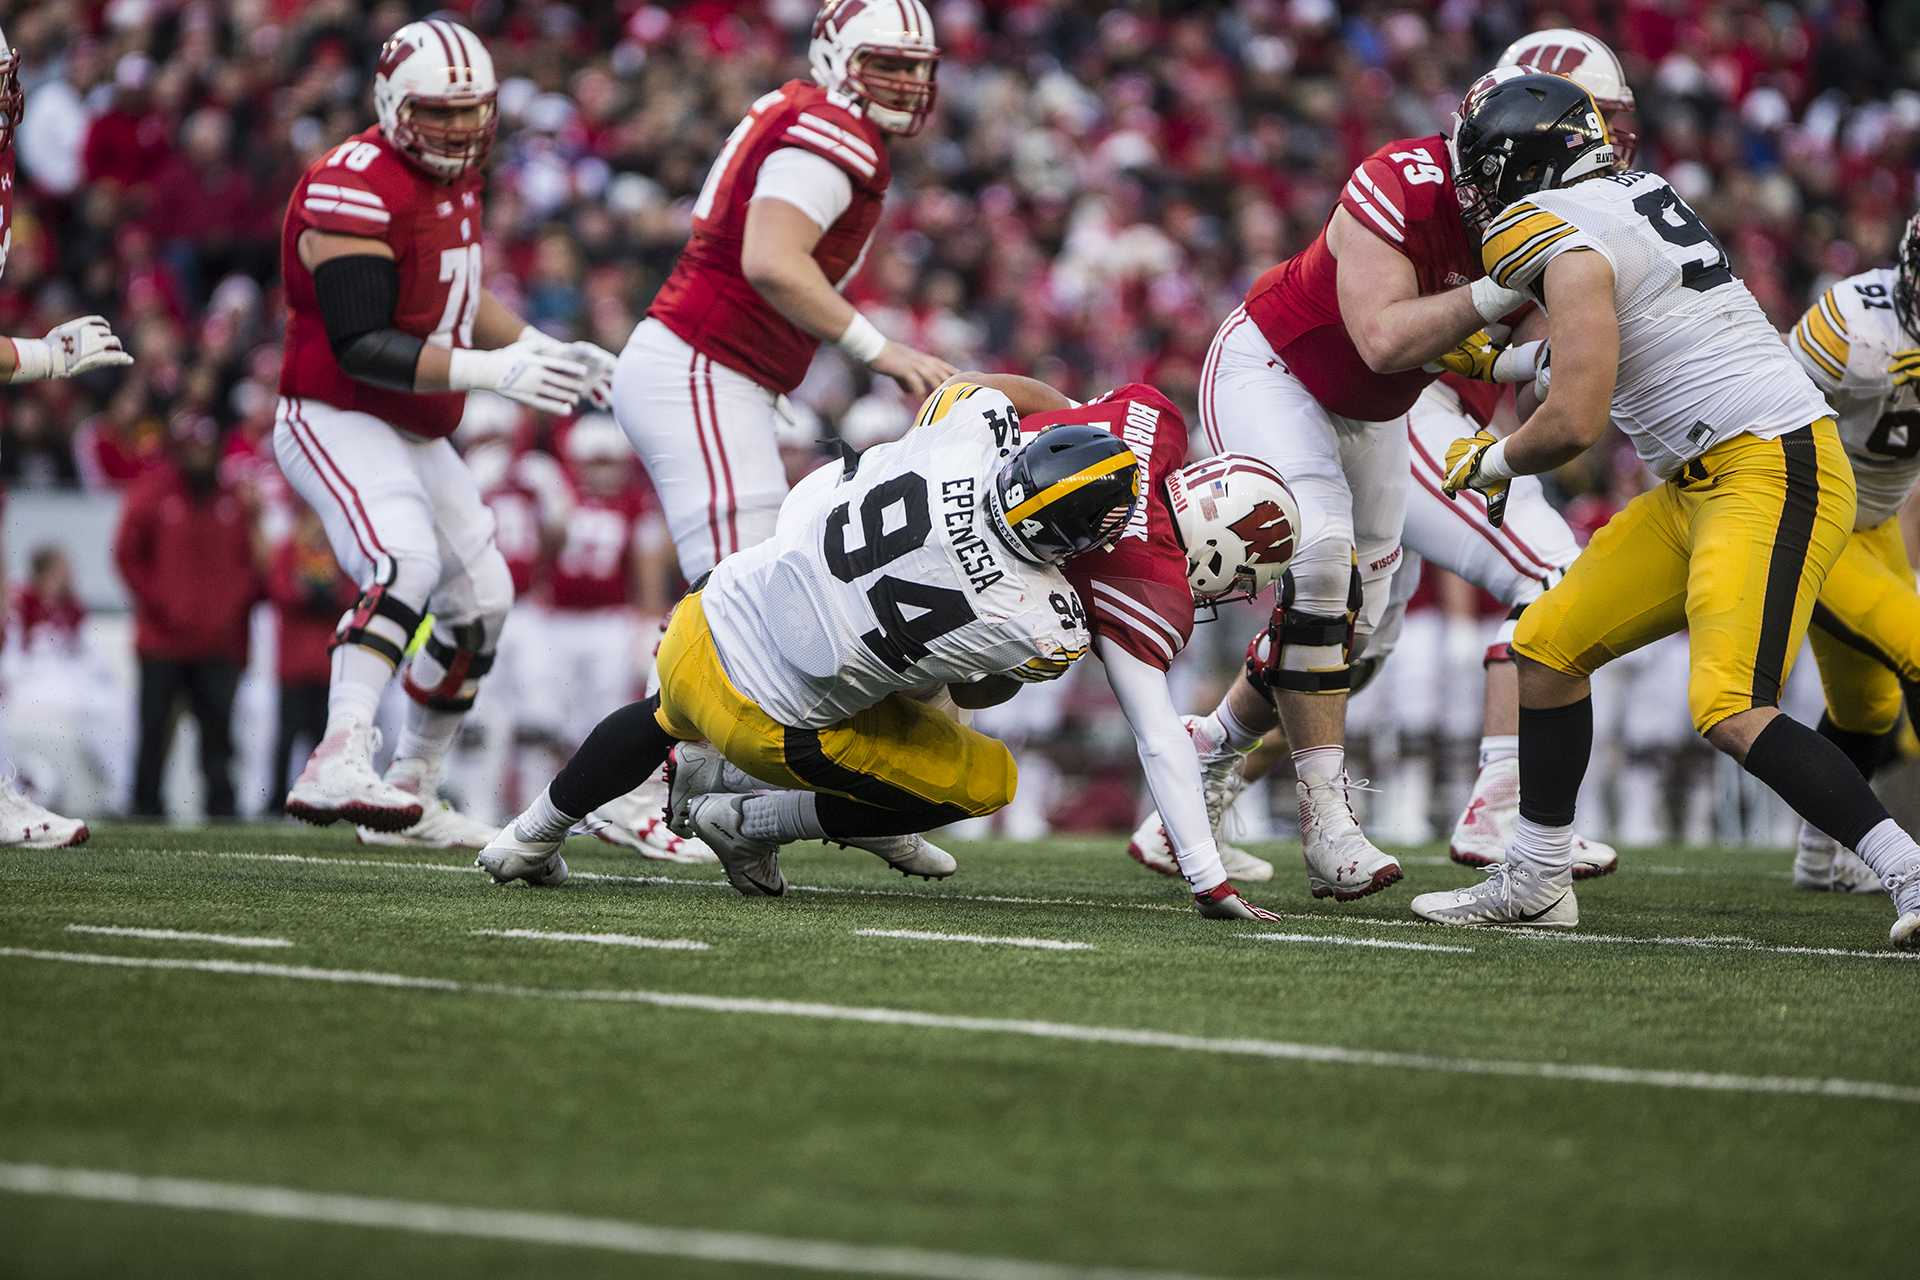 Iowa defensive end A.J. Epenesa (94) sacks Wisconsin quarterback Alex Hornibrook (12) during the game between Iowa and Wisconsin at Camp Randall Stadium on Saturday, Nov. 11, 2017. The Hawkeyes fell to the Badgers 38-14.